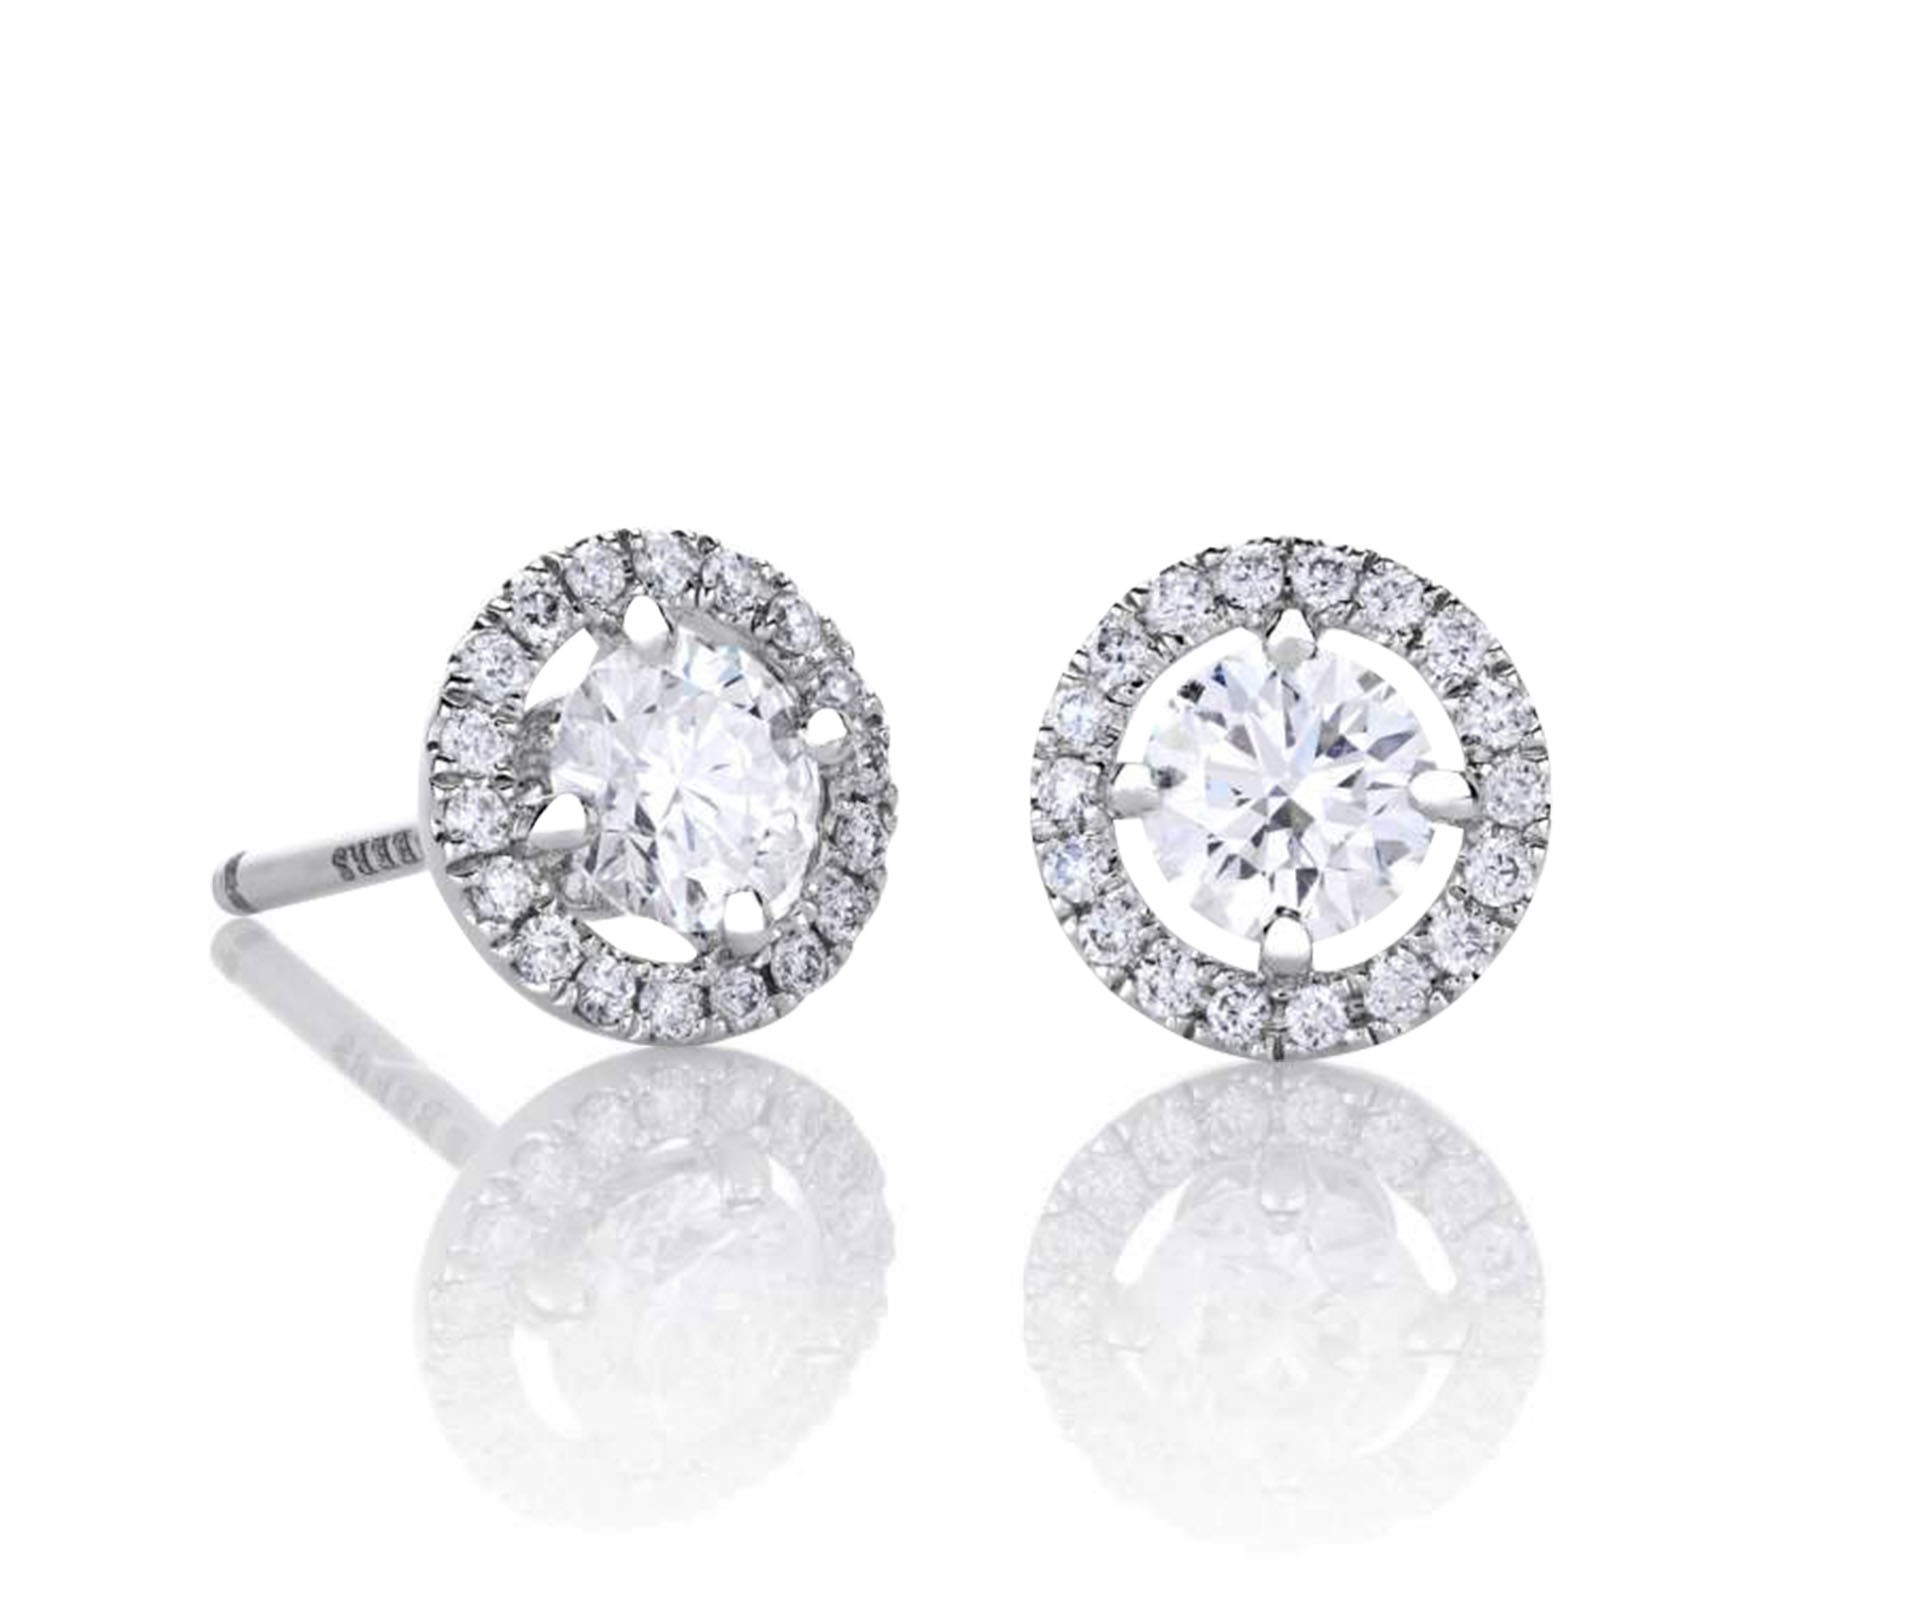 silver dce jewellery cz earring and stud sterling halo in earrings rhodium diamond plated